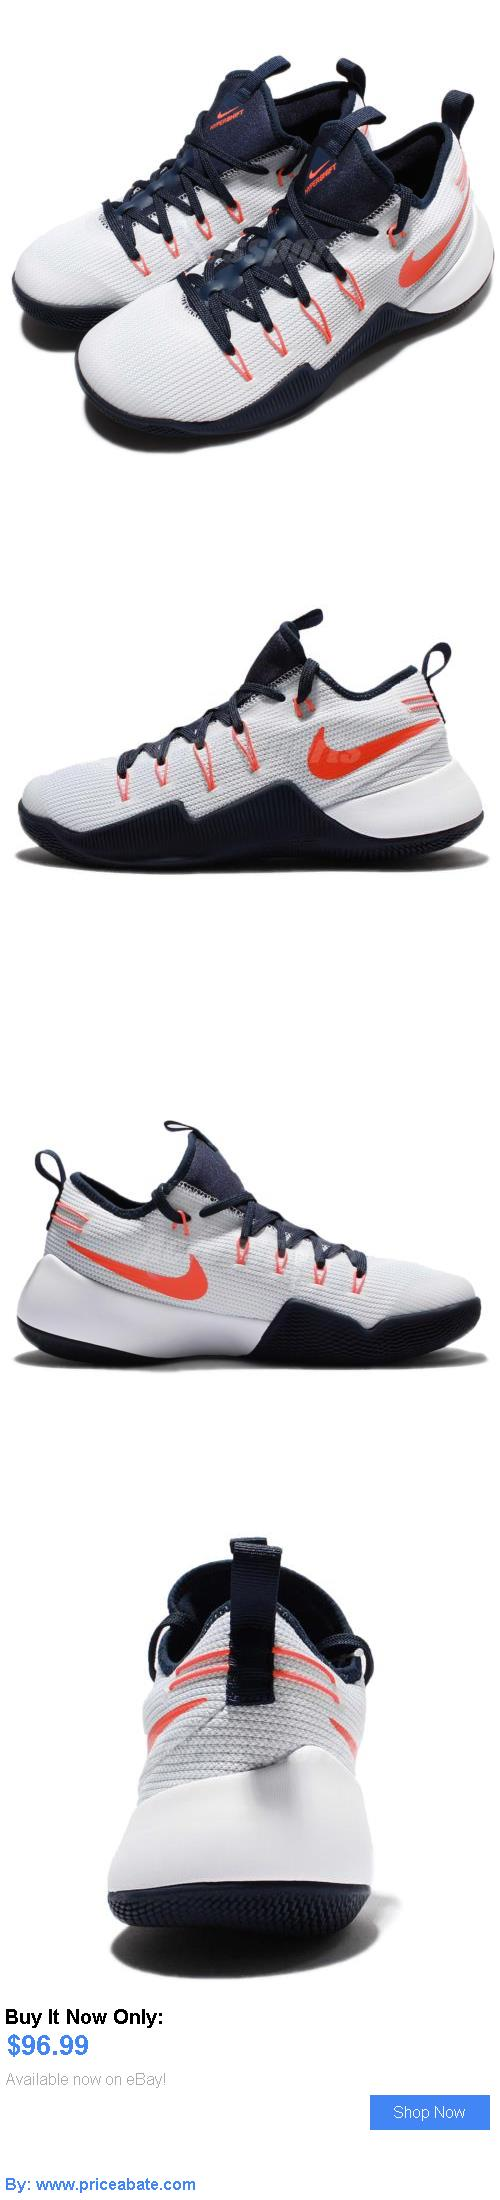 4a62762f628d Basketball  Nike Hypershift Ep Xdr Usa Navy White Mens Basketball Shoes  Zoom 844392-164 BUY IT NOW ONLY   96.99  priceabateBasketball OR  priceabate